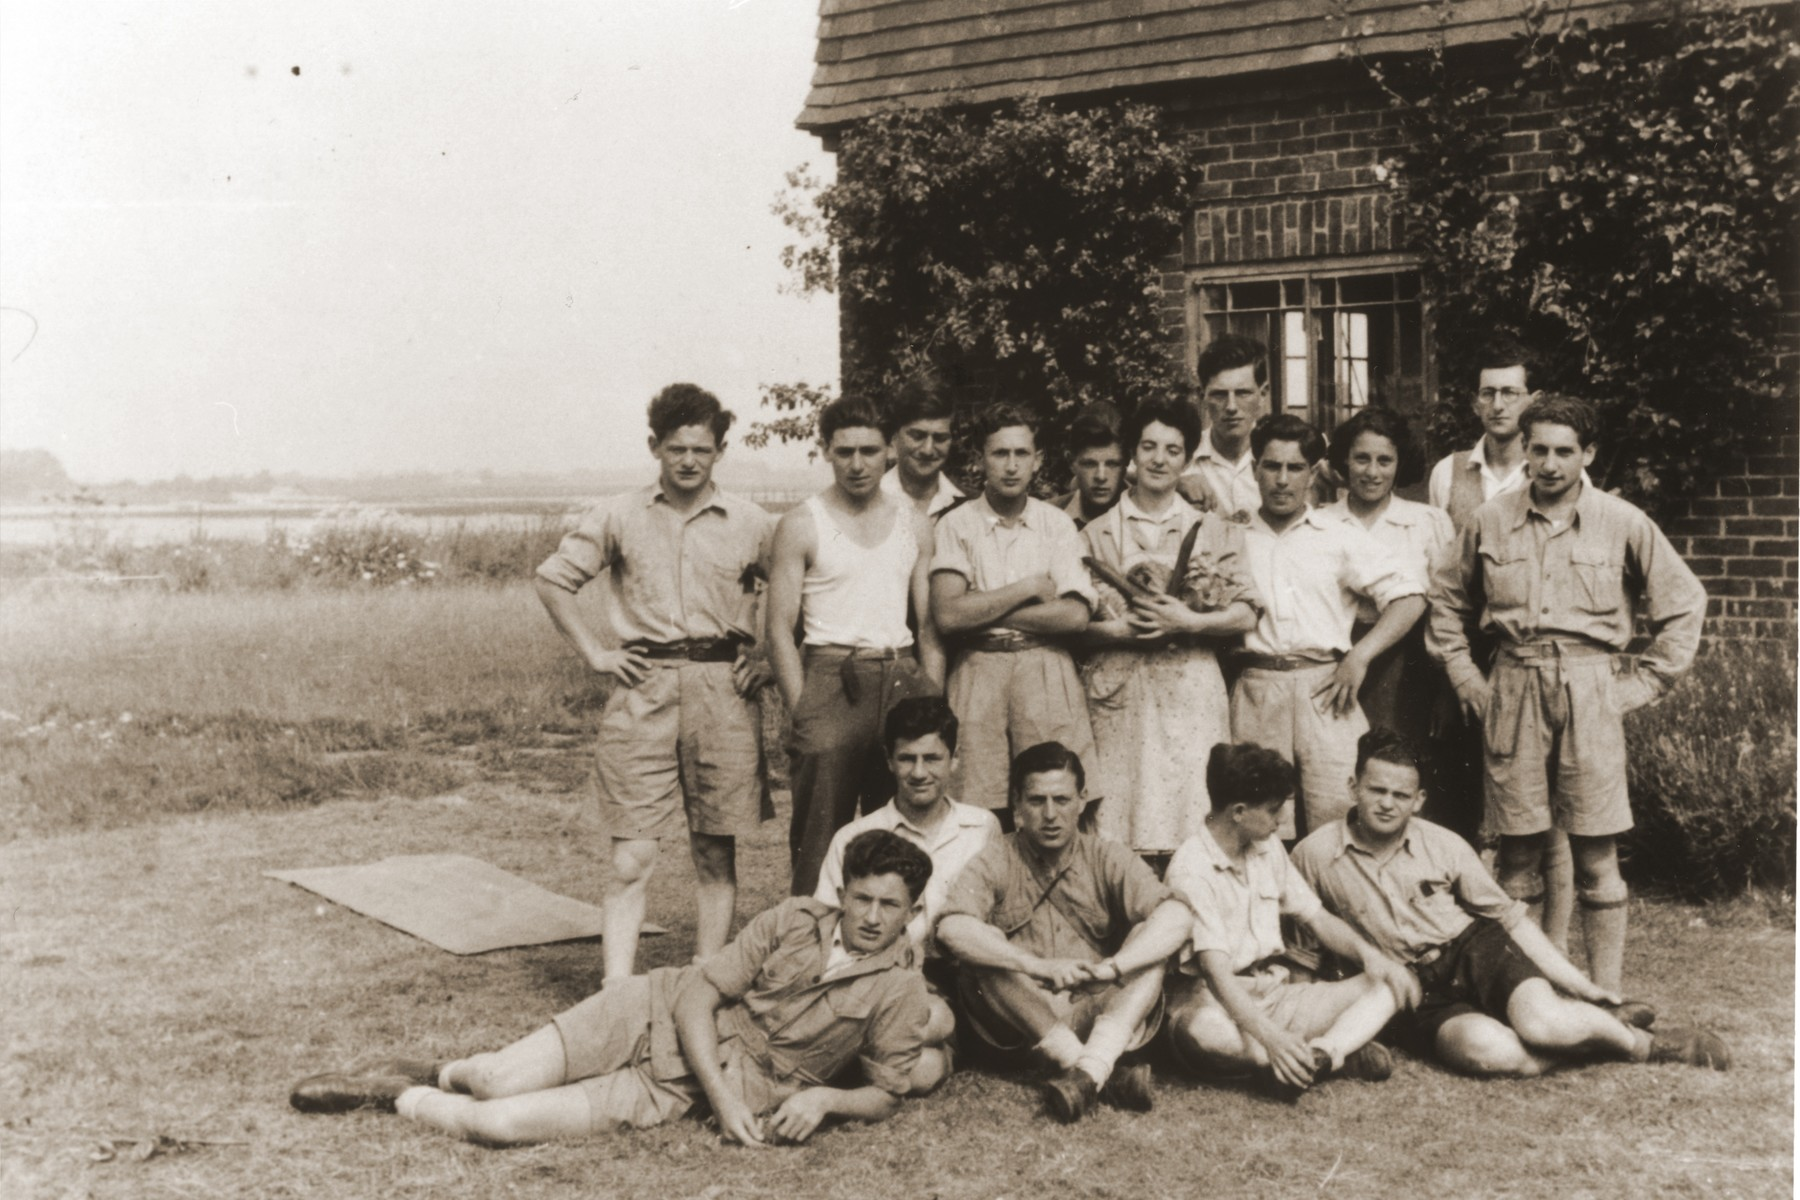 Jewish youth who came to England with the orphans transport pose at a kibbutz hachshara (Zionist agricultural collective) outside of London.  Among those pictured are Roman Halter (semi-reclining, far left), Ben Helfgott (semi-reclining far right) and Moniek Goldberg standing far left.